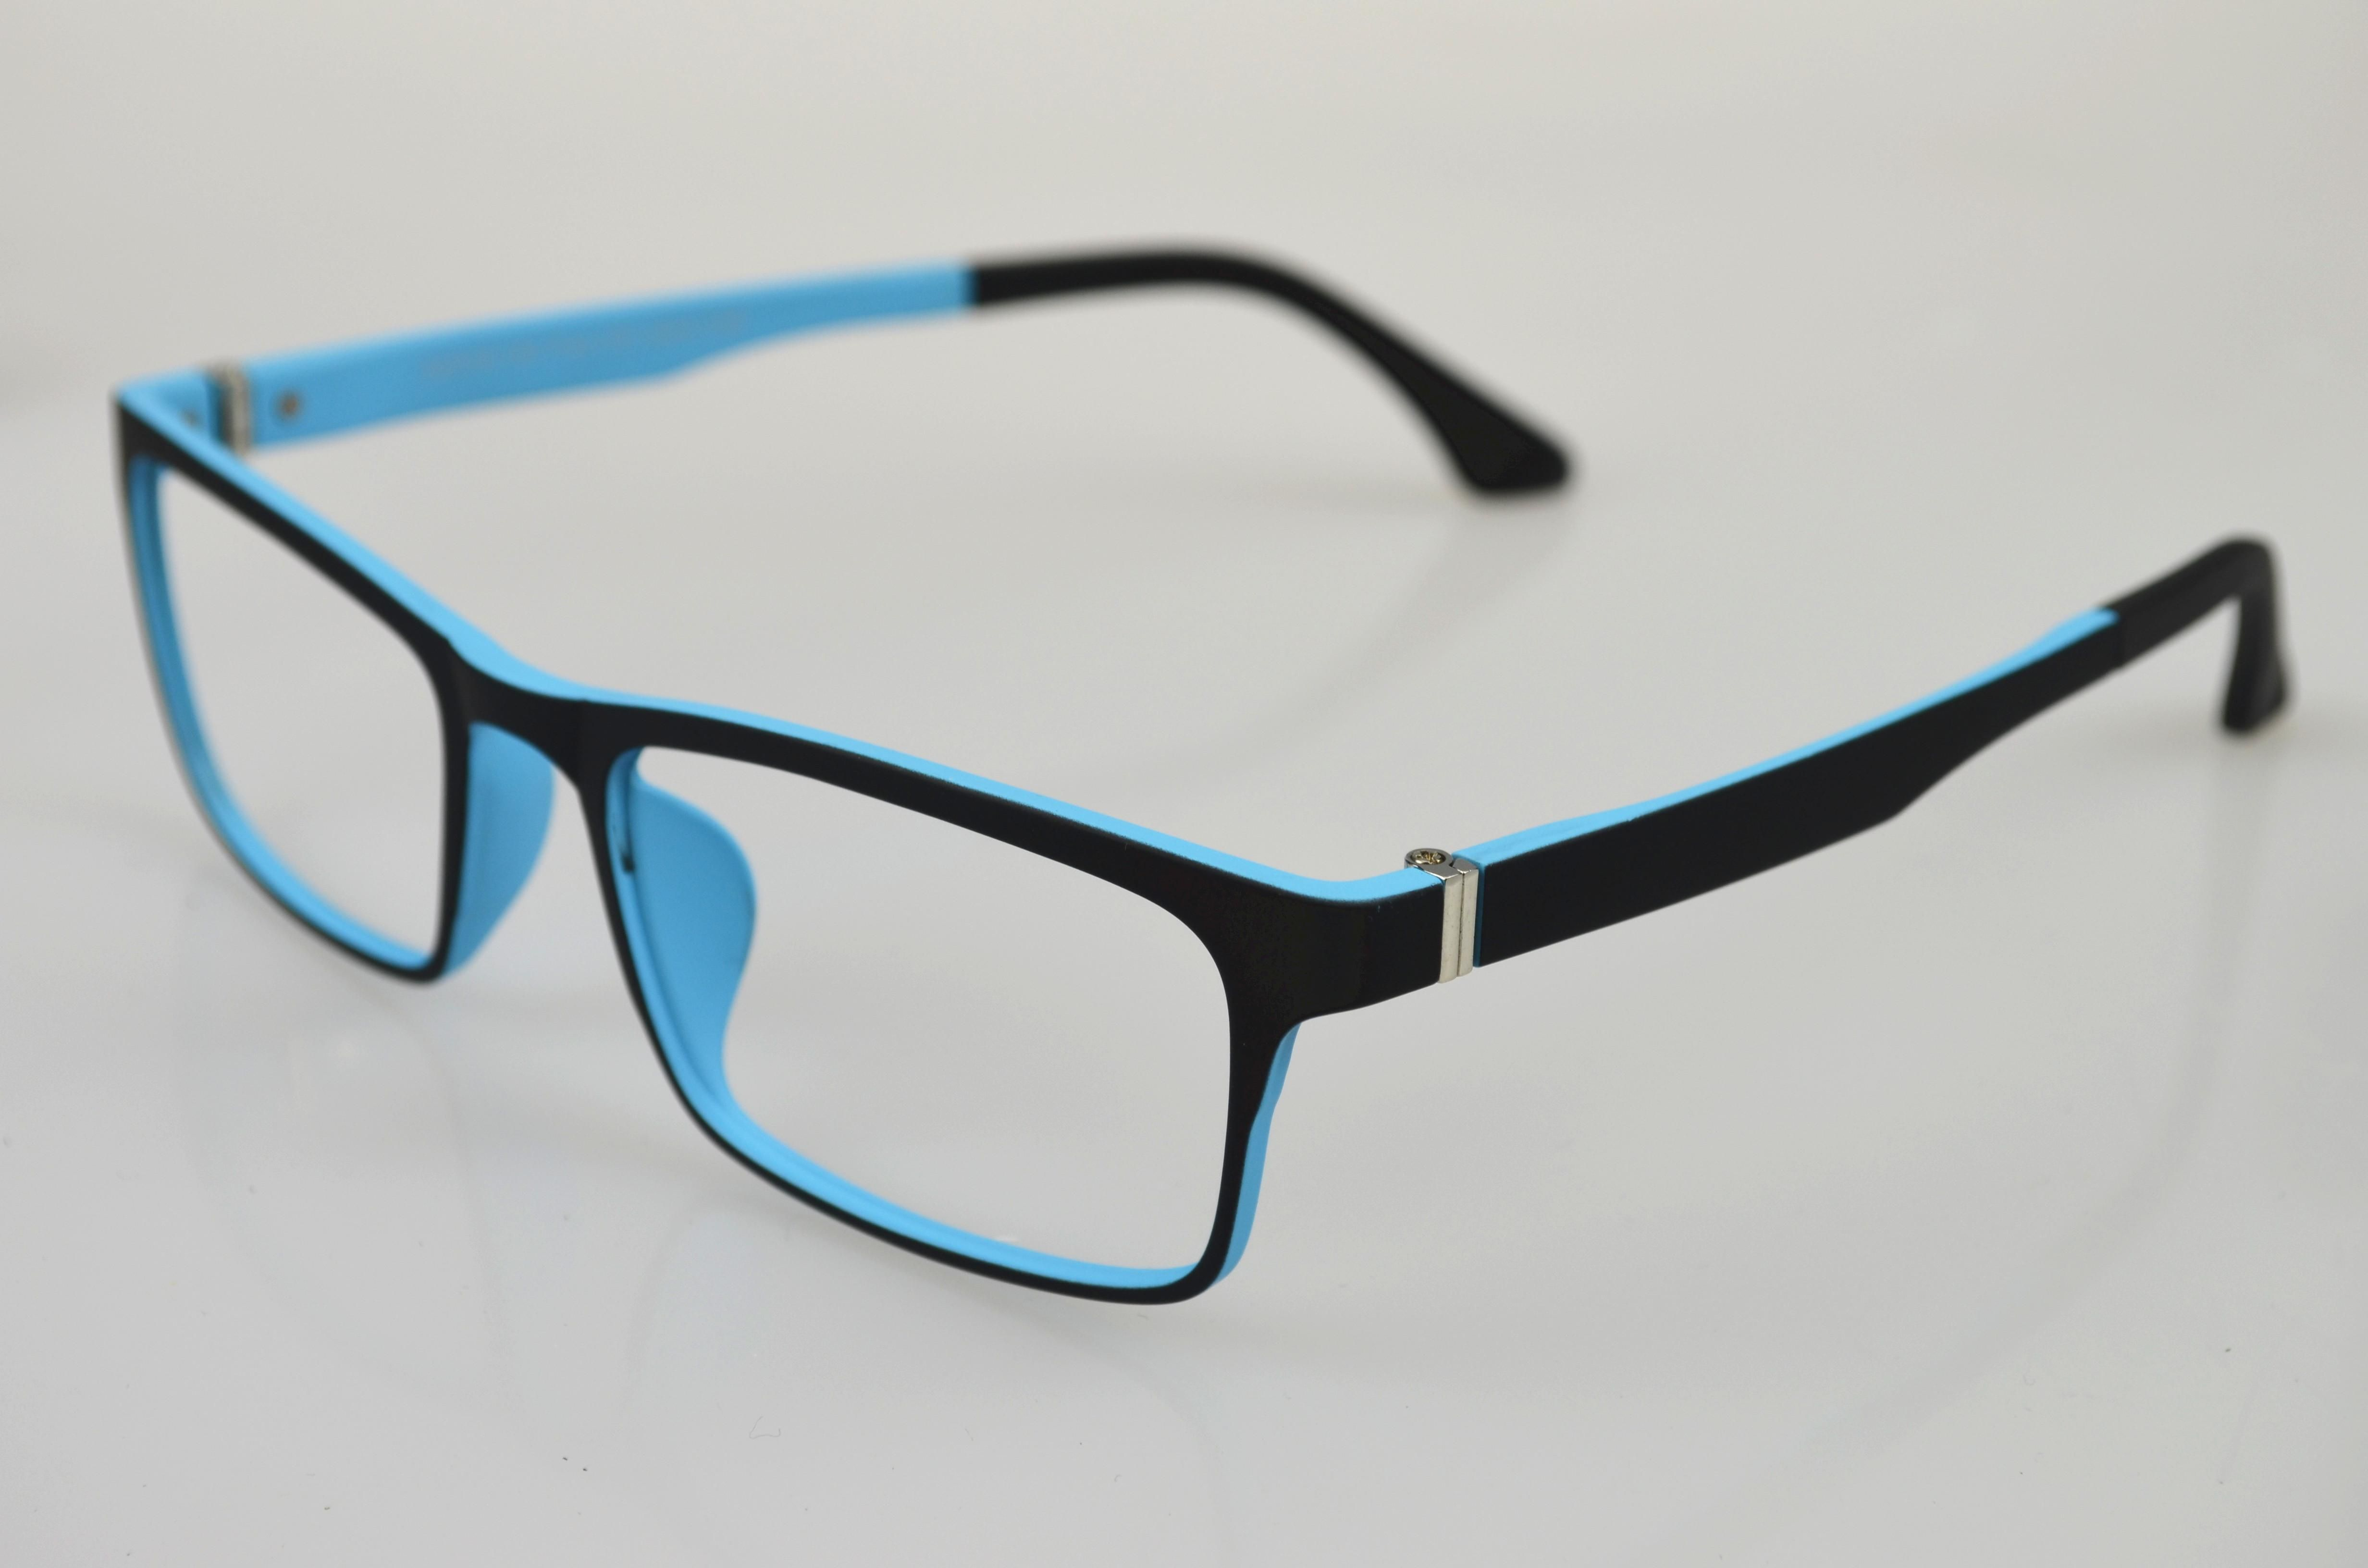 Eyeglass Frames And Lenses : fashion optical glasses frames men super light ...